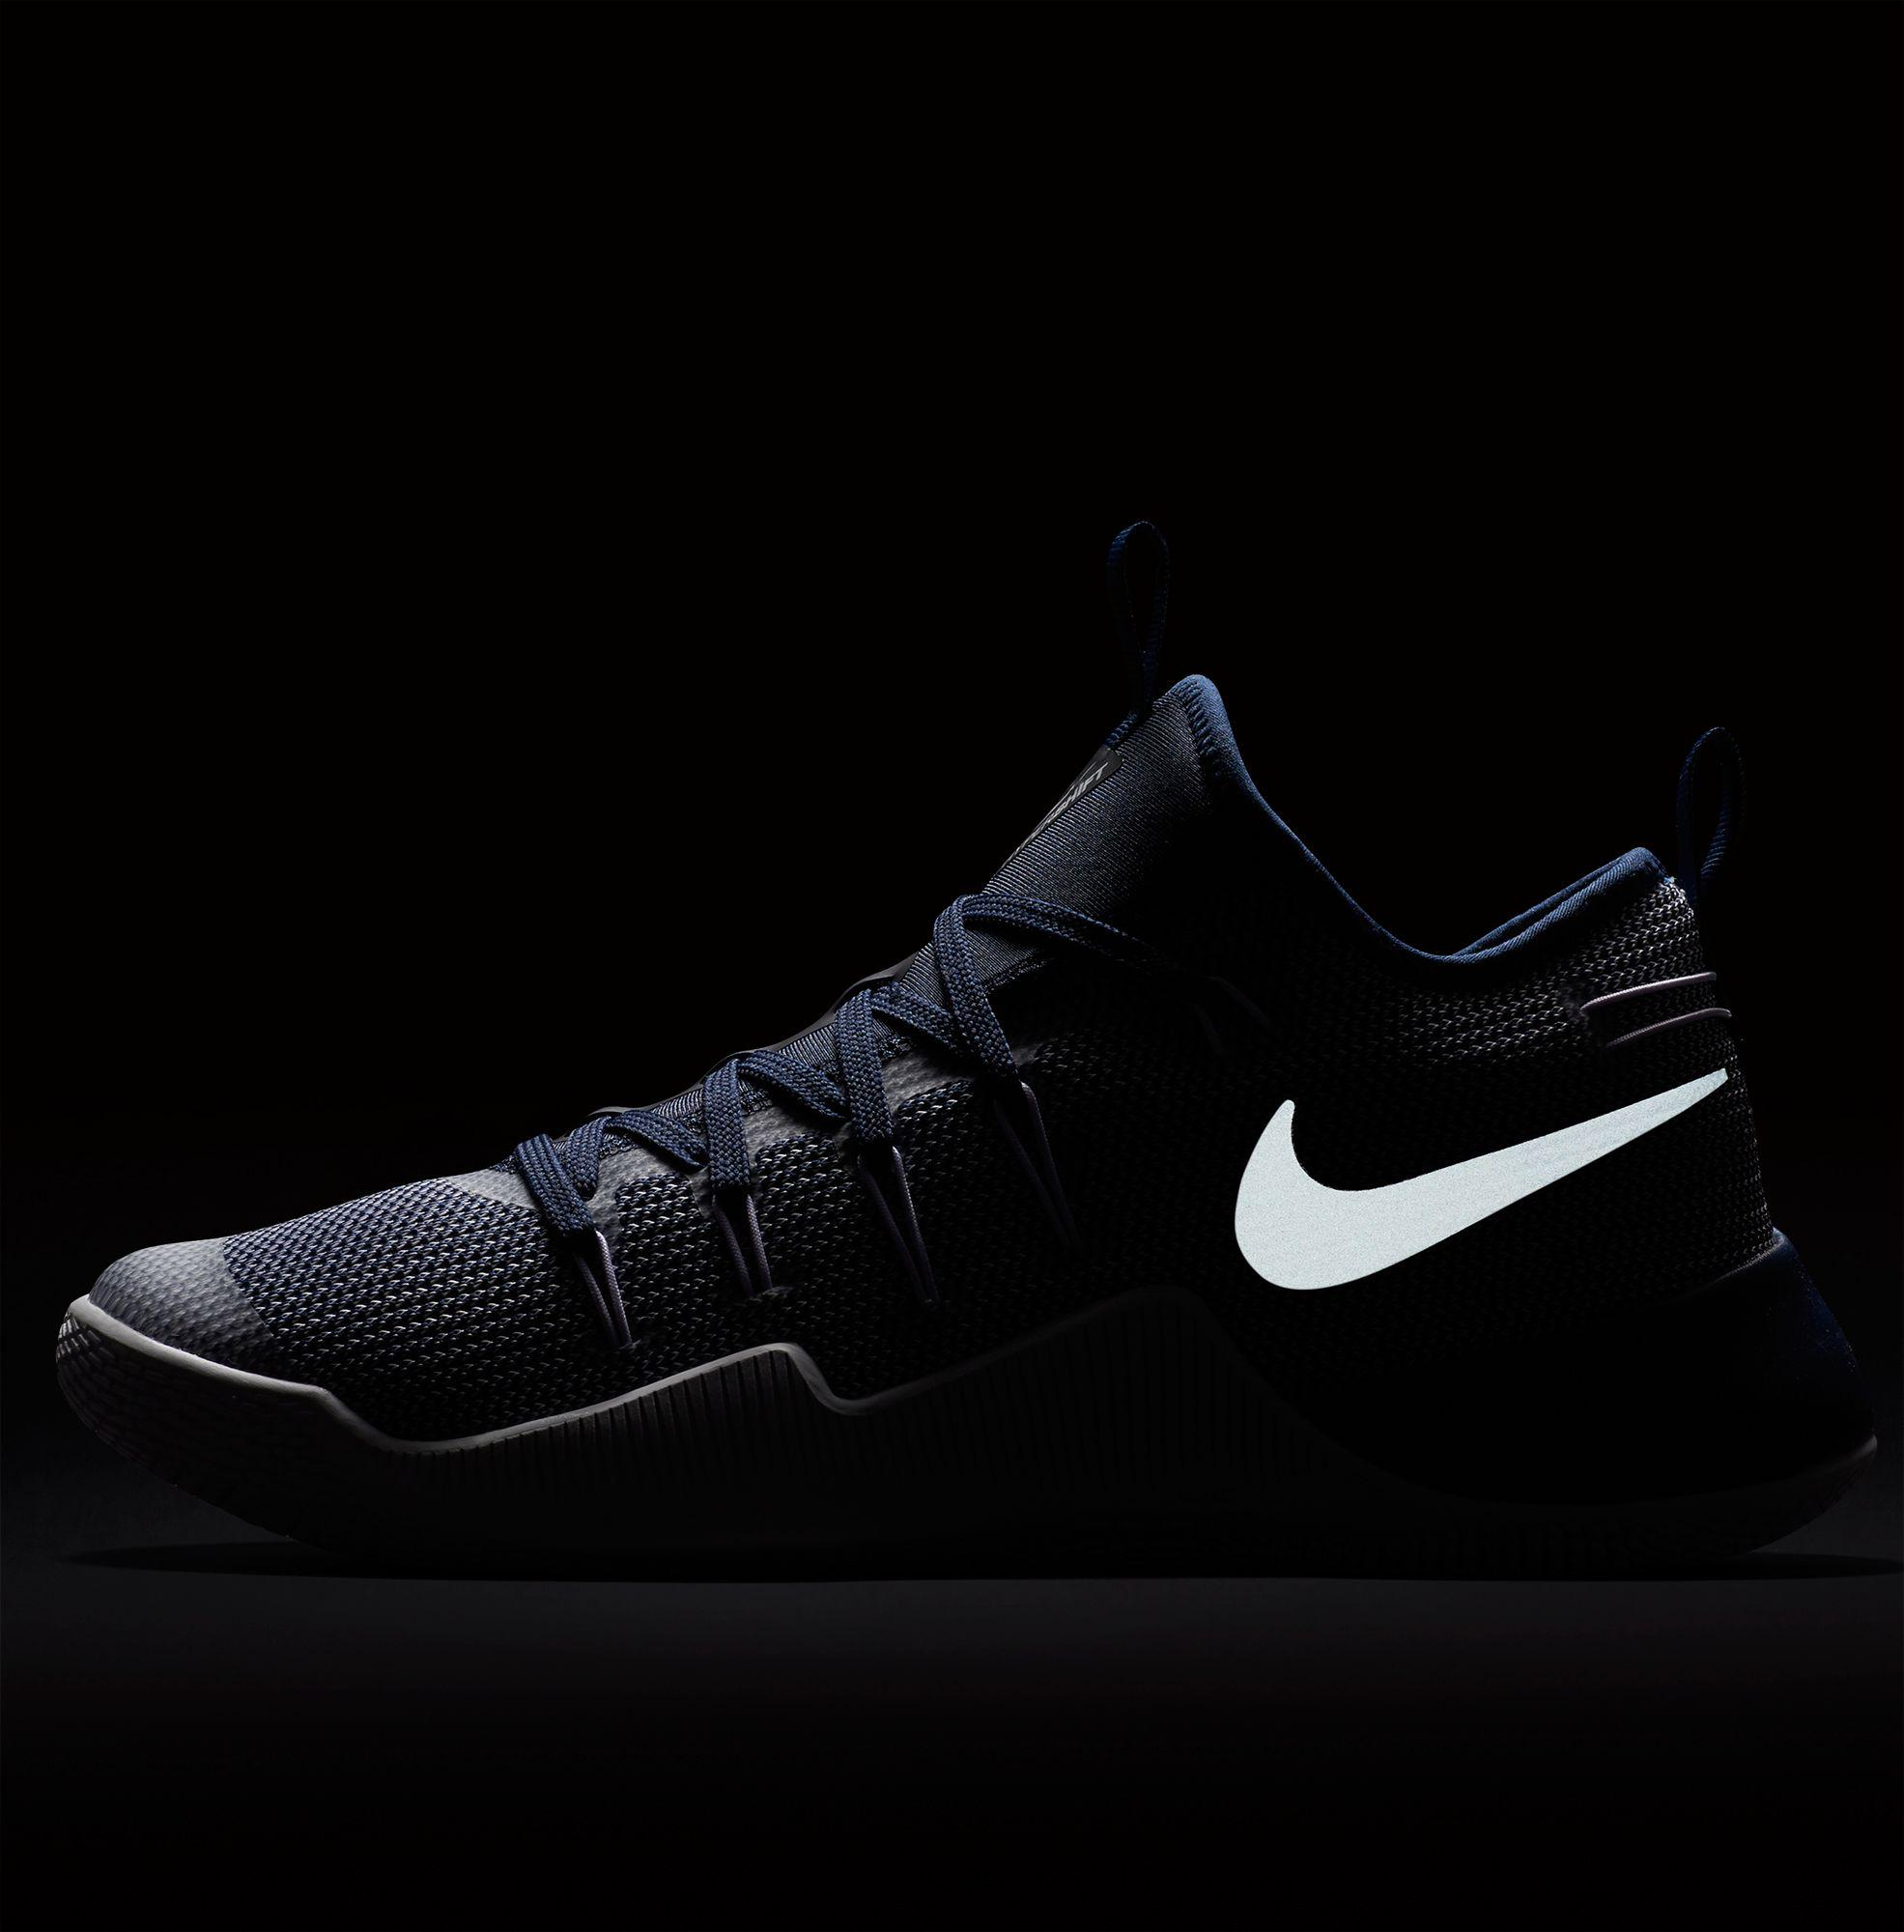 db298b18a024 ... white black 844387 100 size 9 91616 bde06  discount lyst nike hypershift  tb basketball shoes in blue for men 0b710 102cd